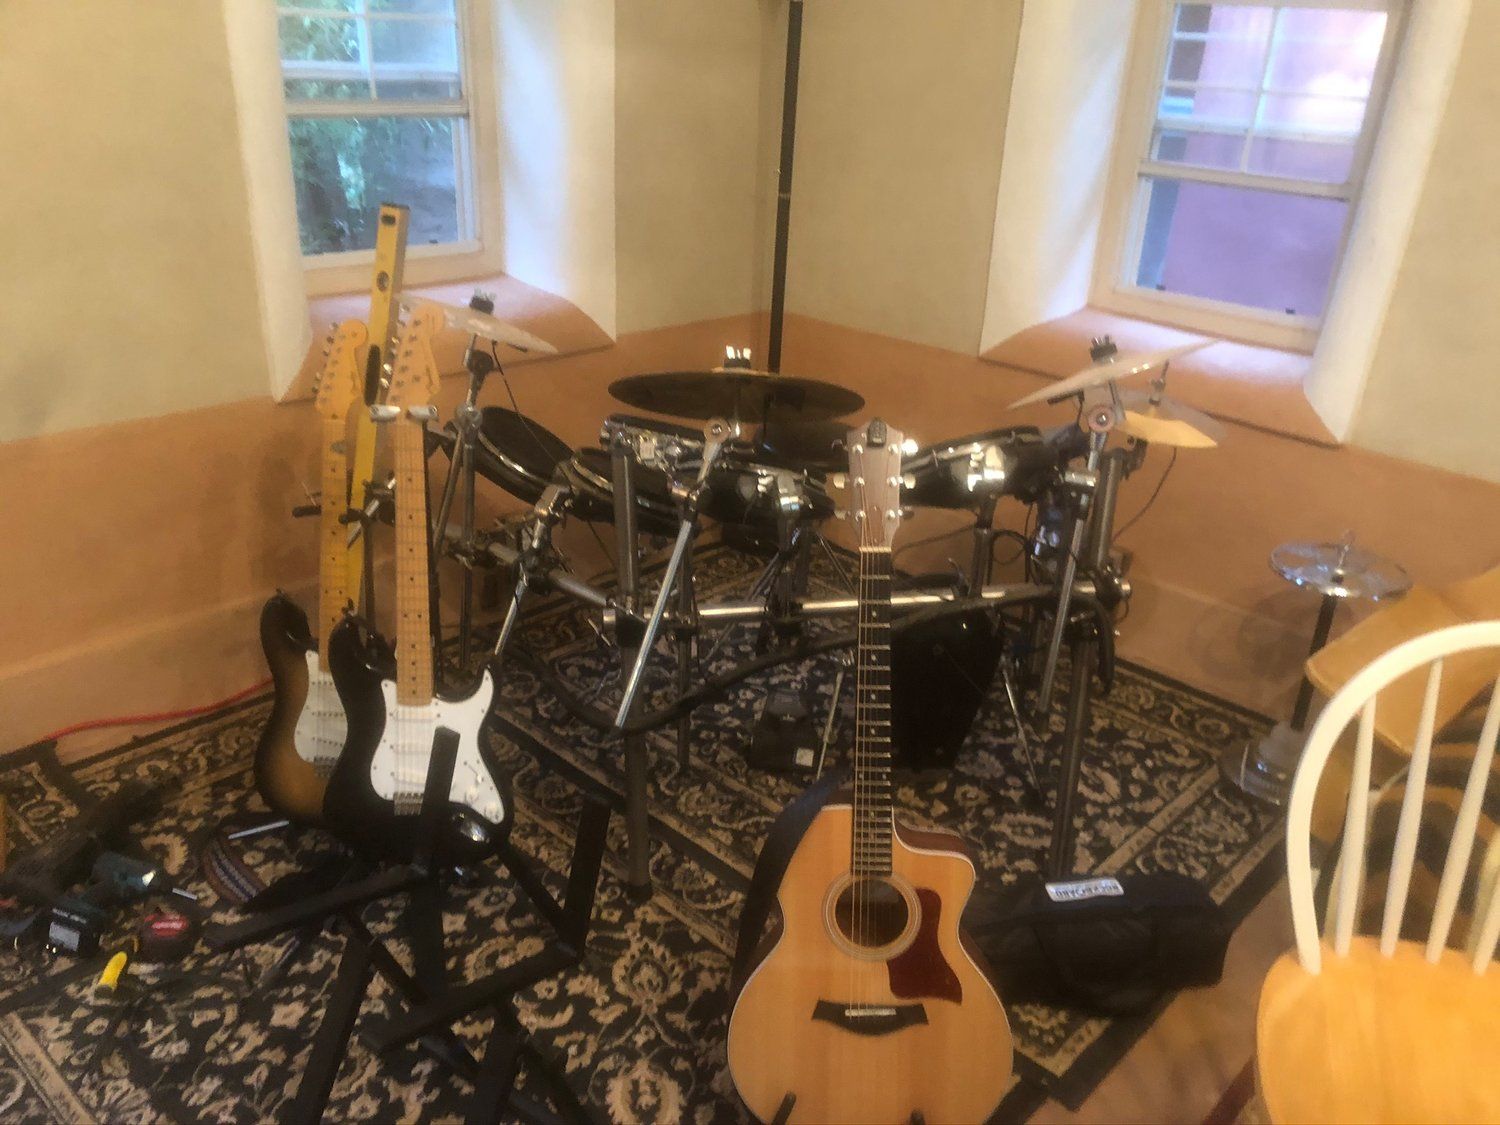 The music room at the Black Range Lodge in Kingston is ready for a musical invasion in early September.